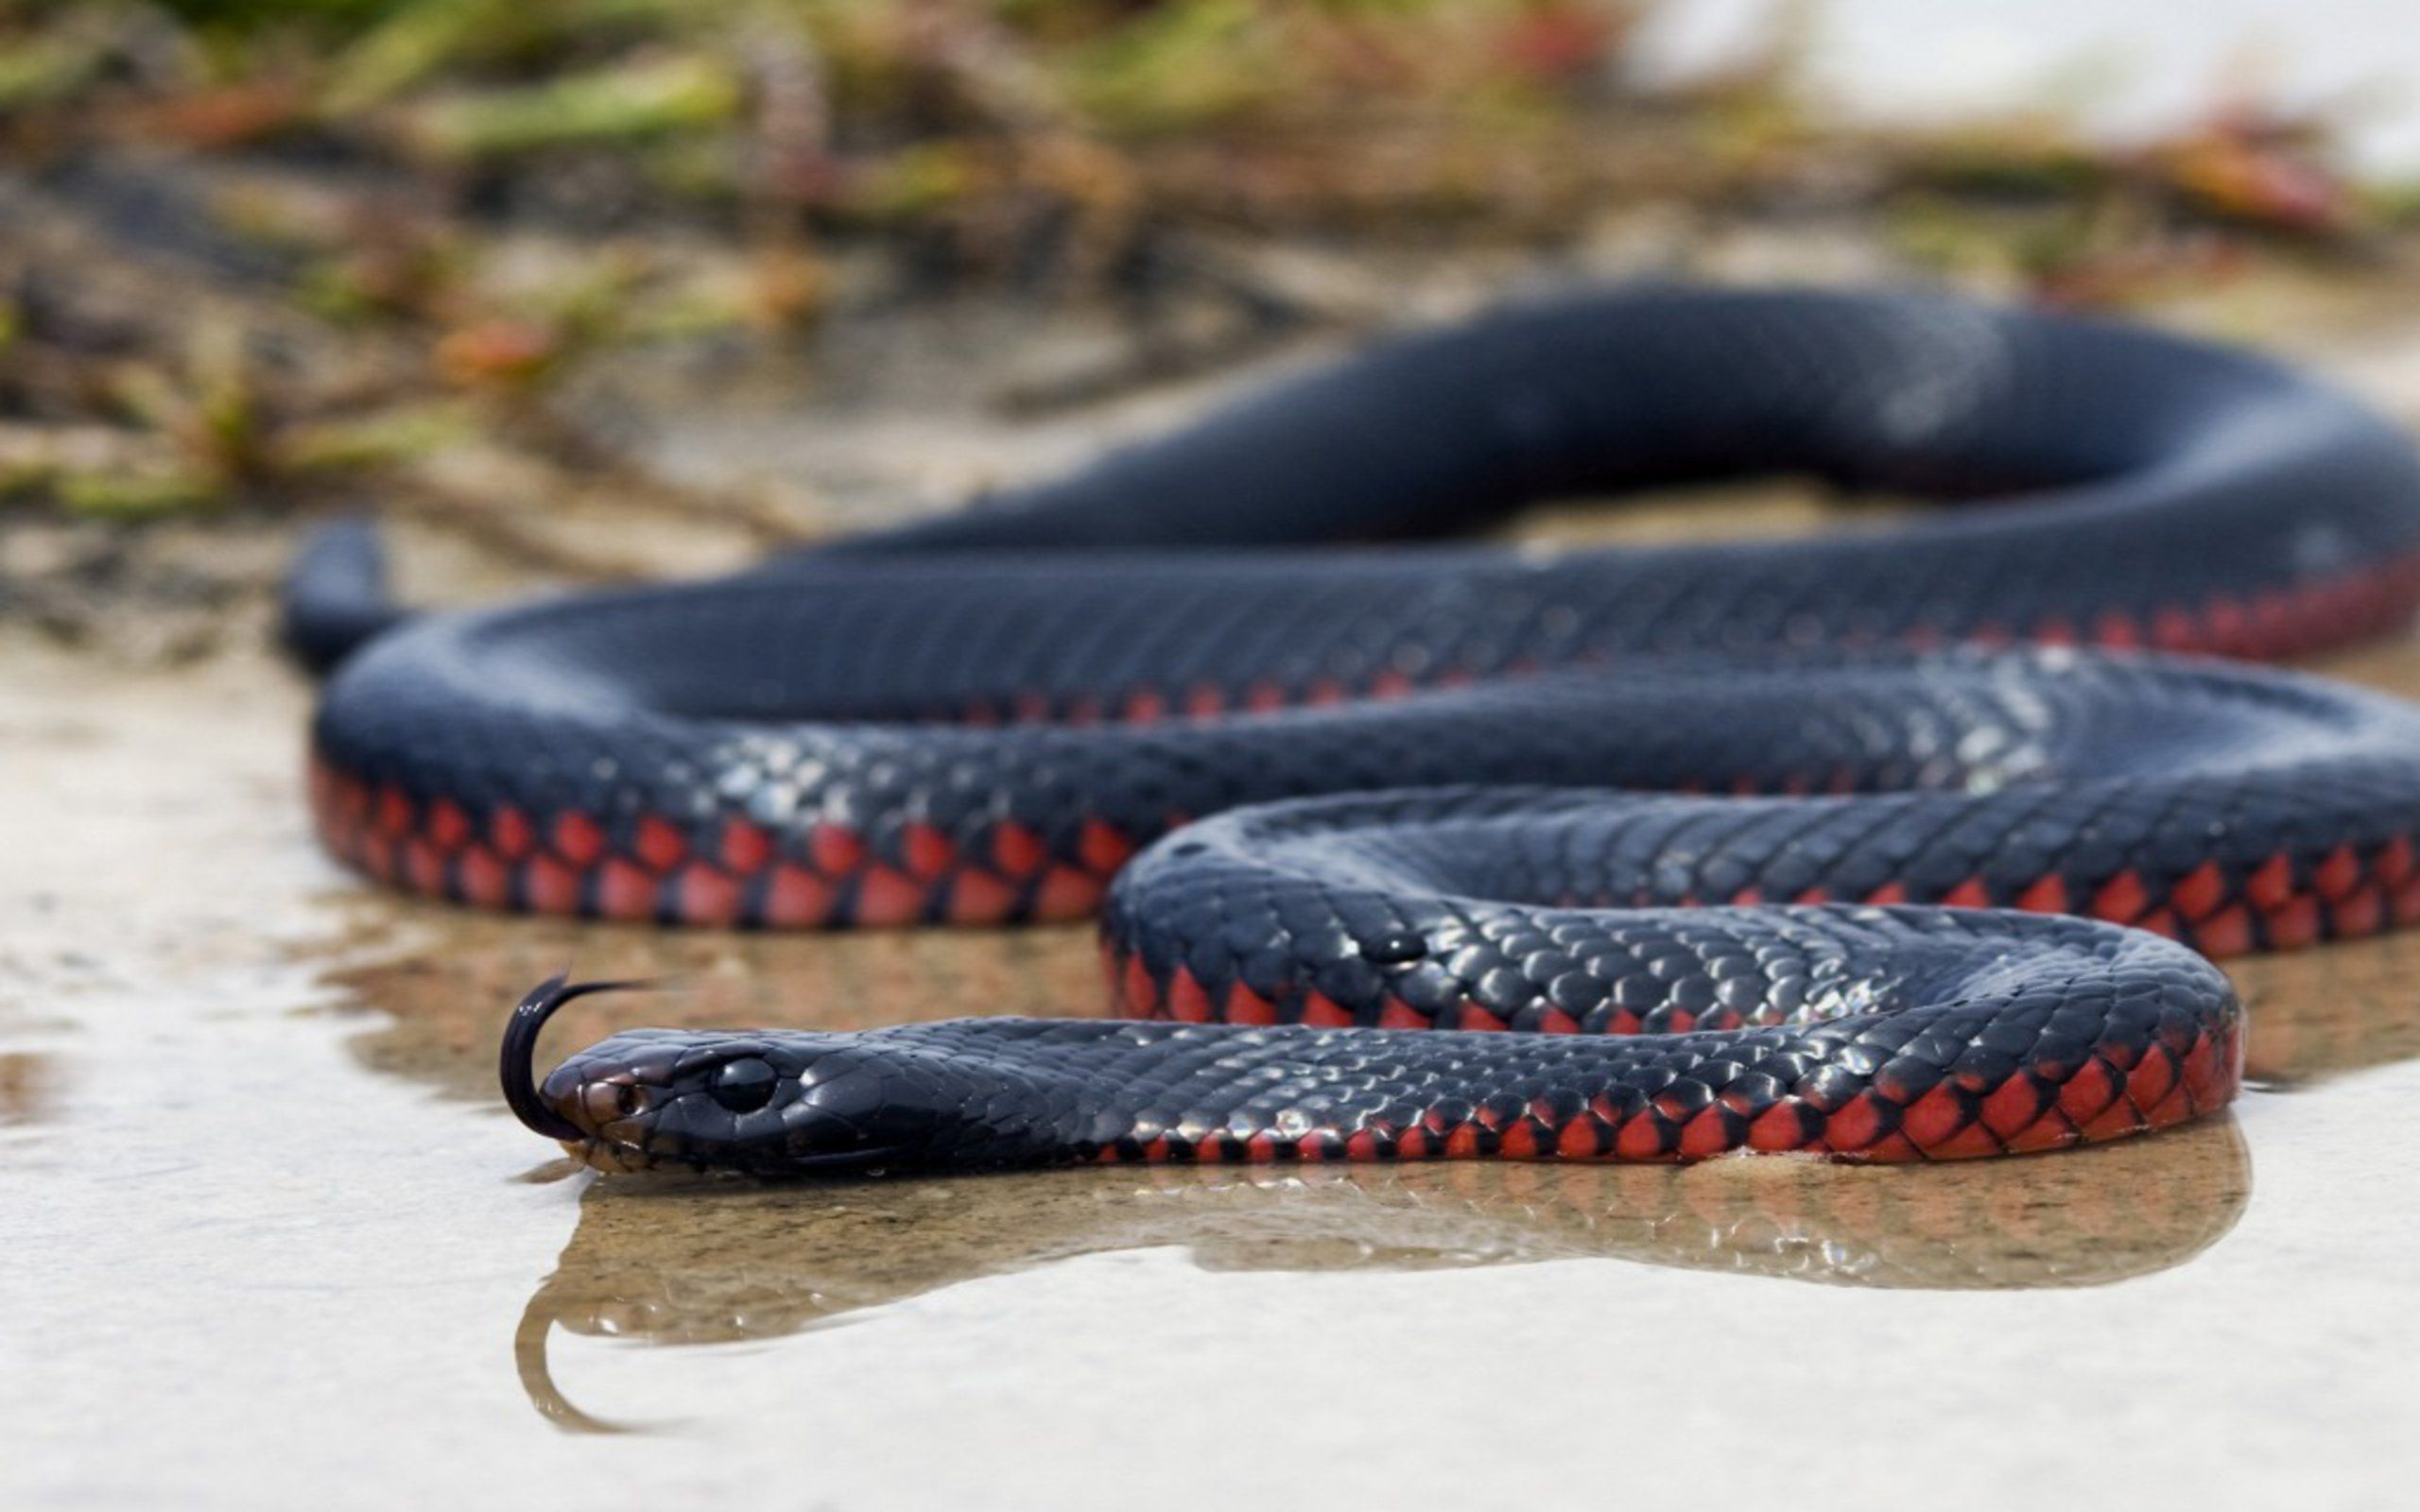 Snakes Photos Background HD Wallpapers